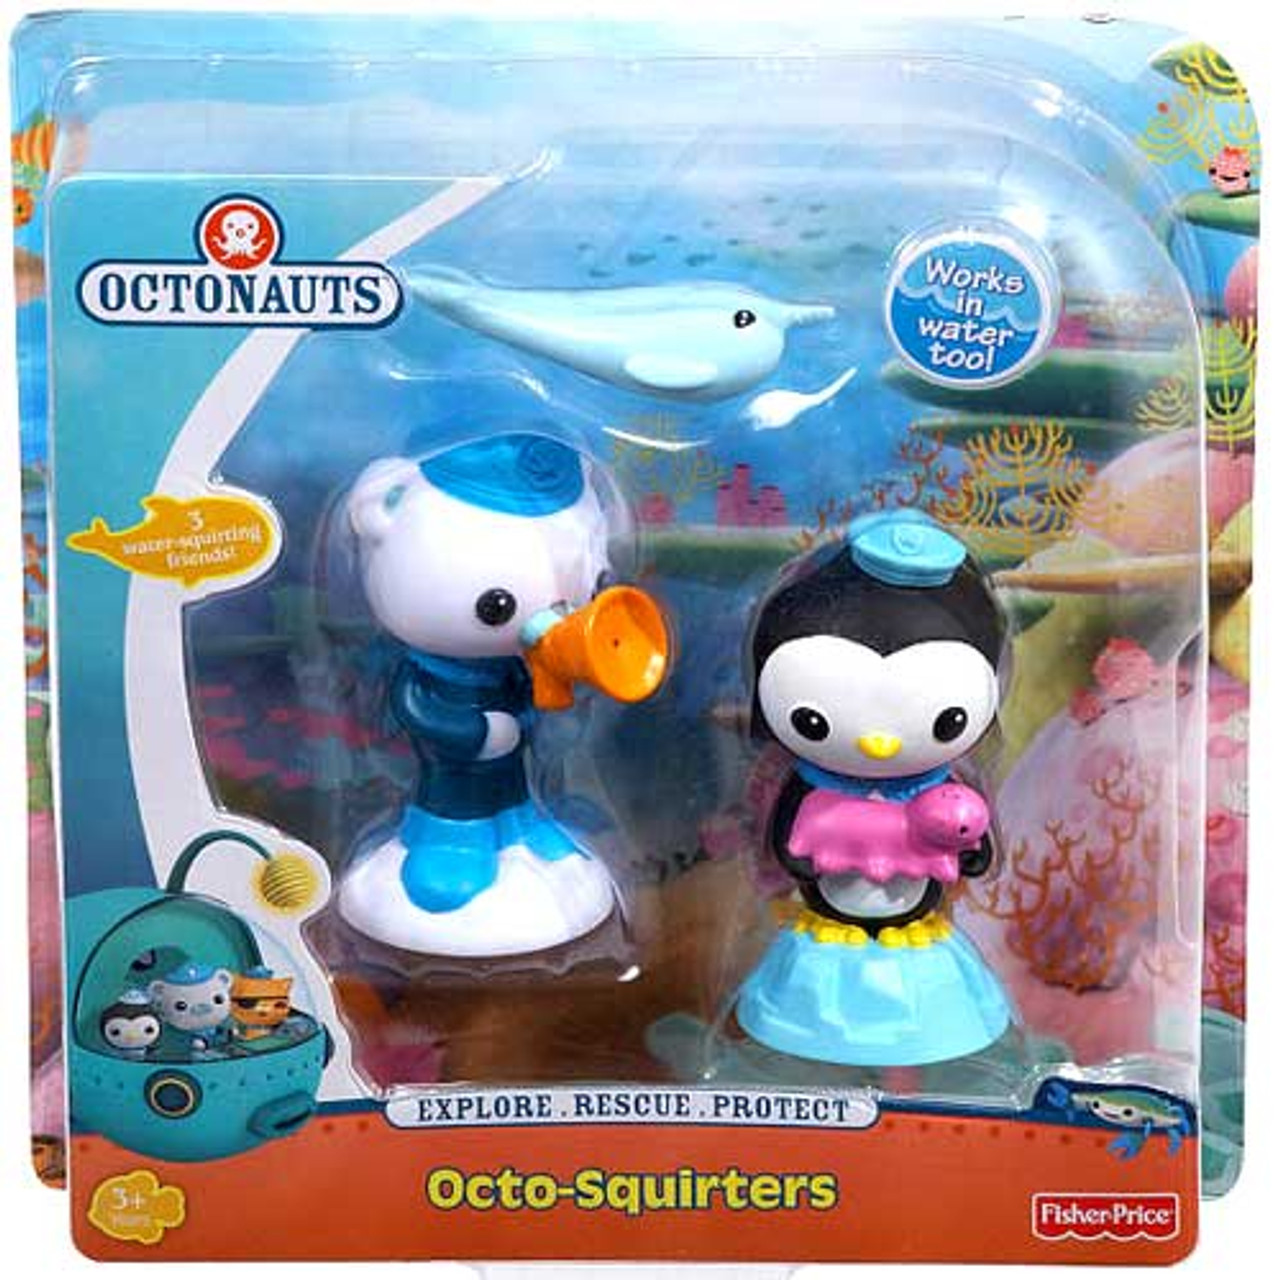 Fisher Price Octonauts Octo-Squirters Narwhal, Peso & Barnacles Figure 2-Pack